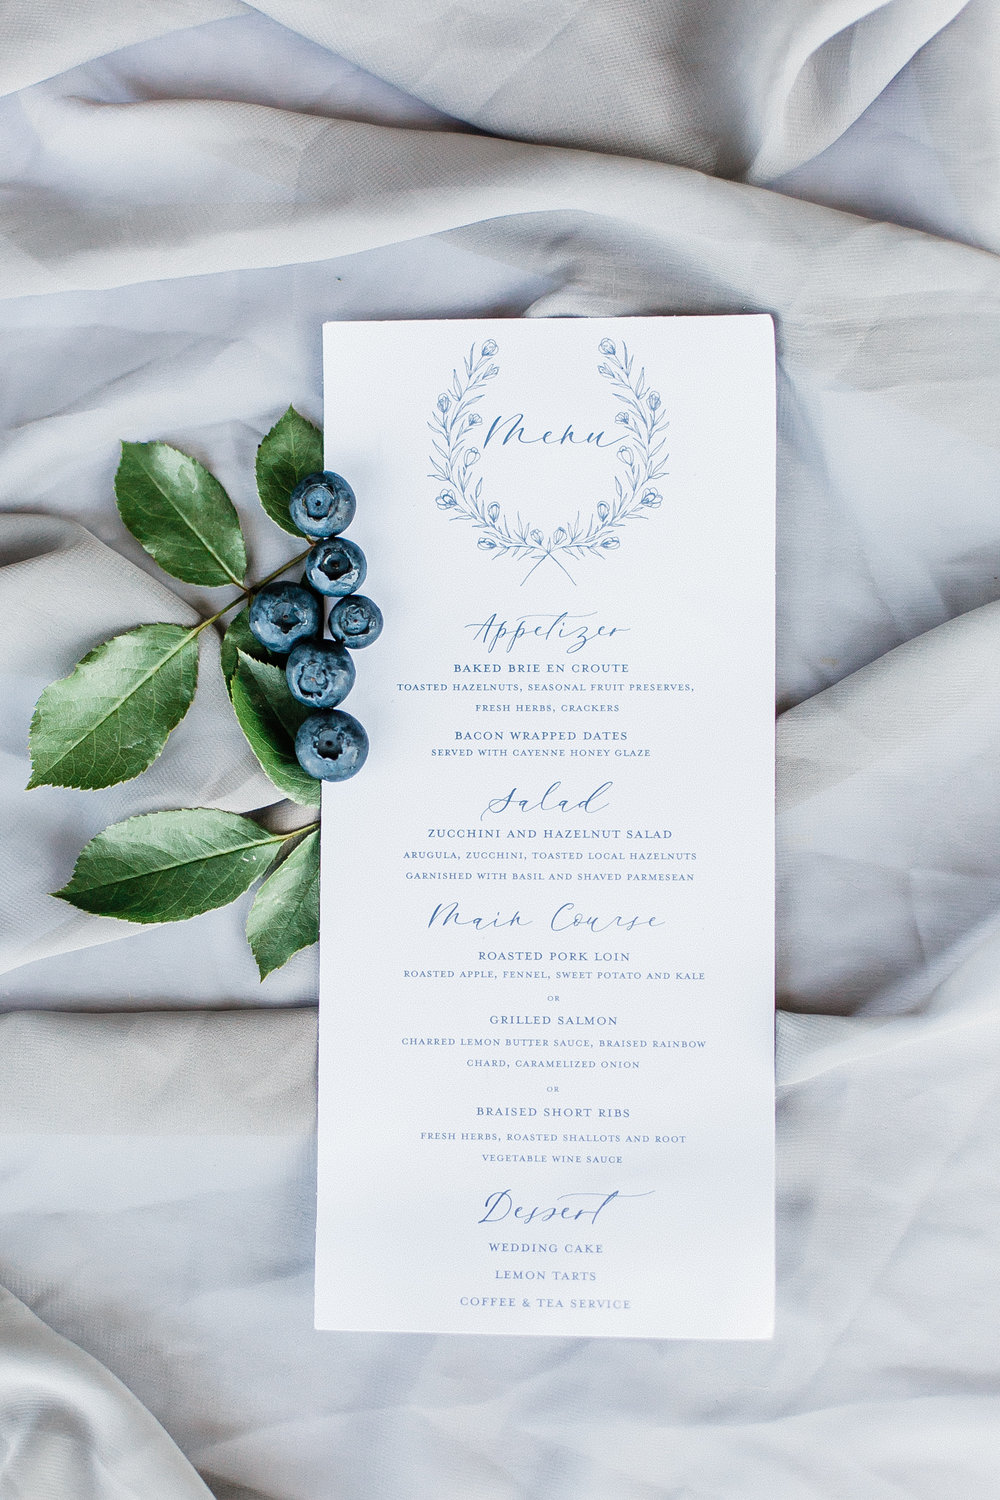 Menus - Menus are a great way to bring your whole design together! Custom menus starting at $1.50 per piece.